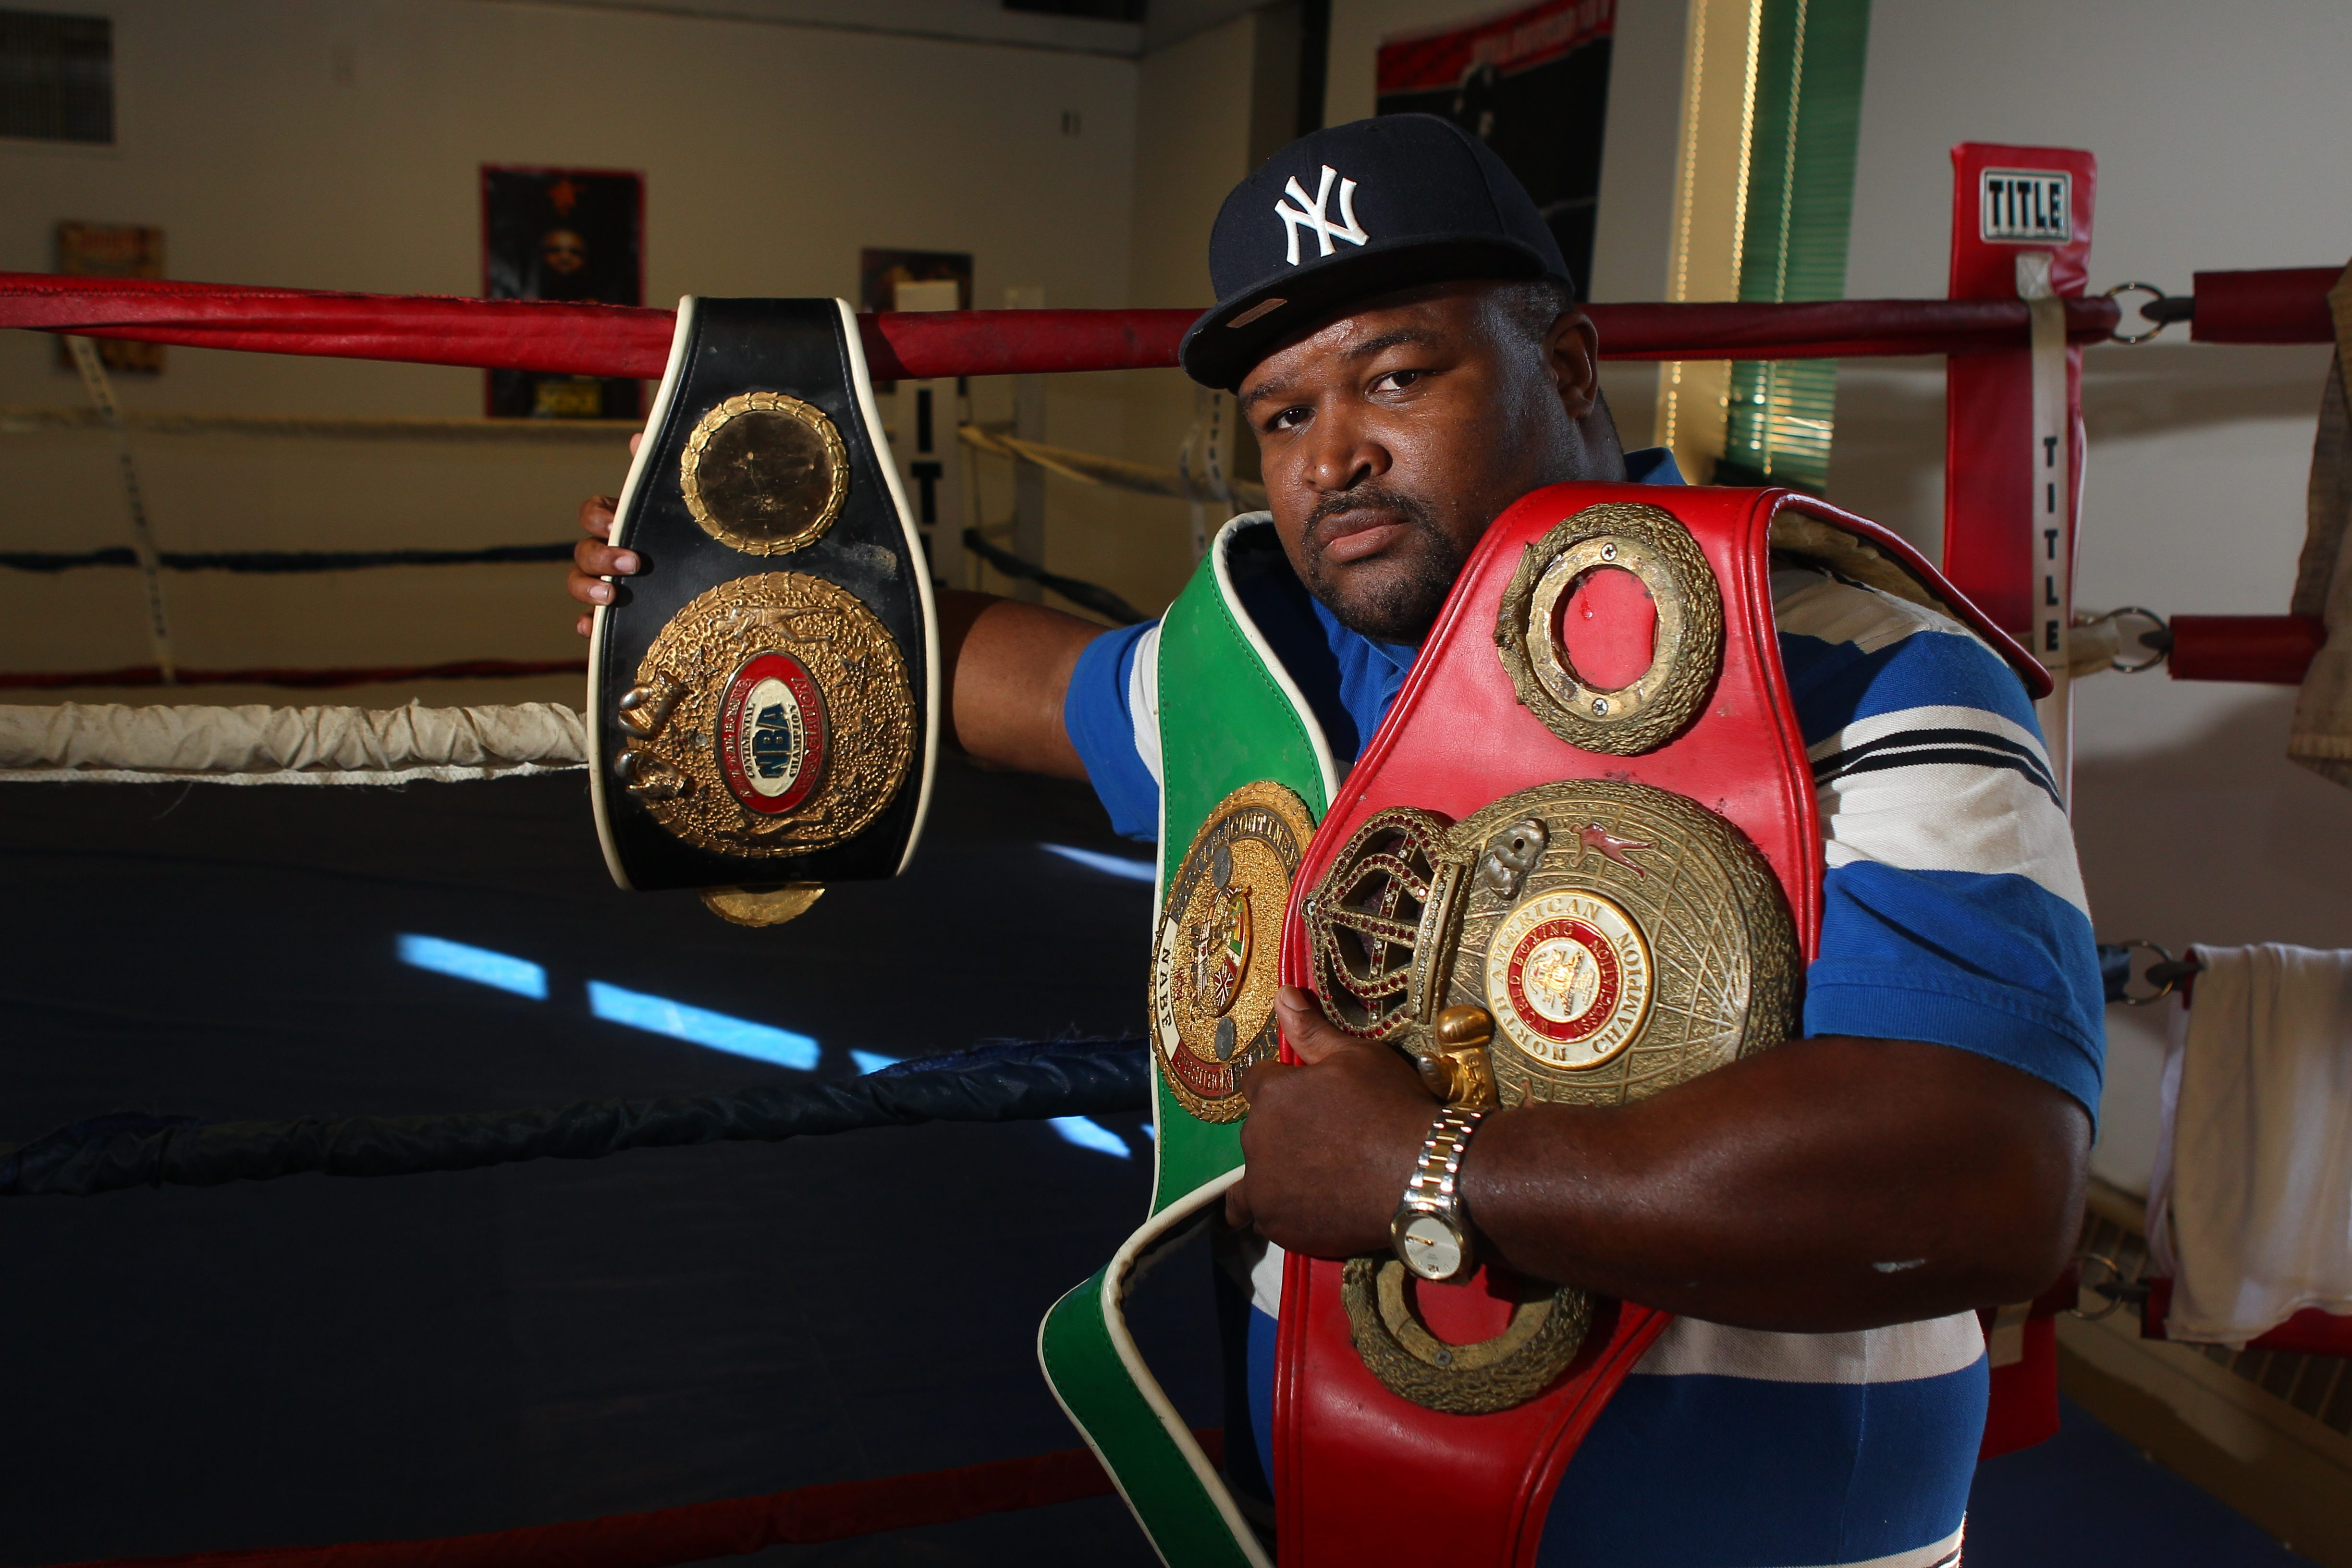 Former world boxing contender Ross Thompson will be inducted into the Buffalo Veteran Boxers Association Ring 44 Hall of Fame.